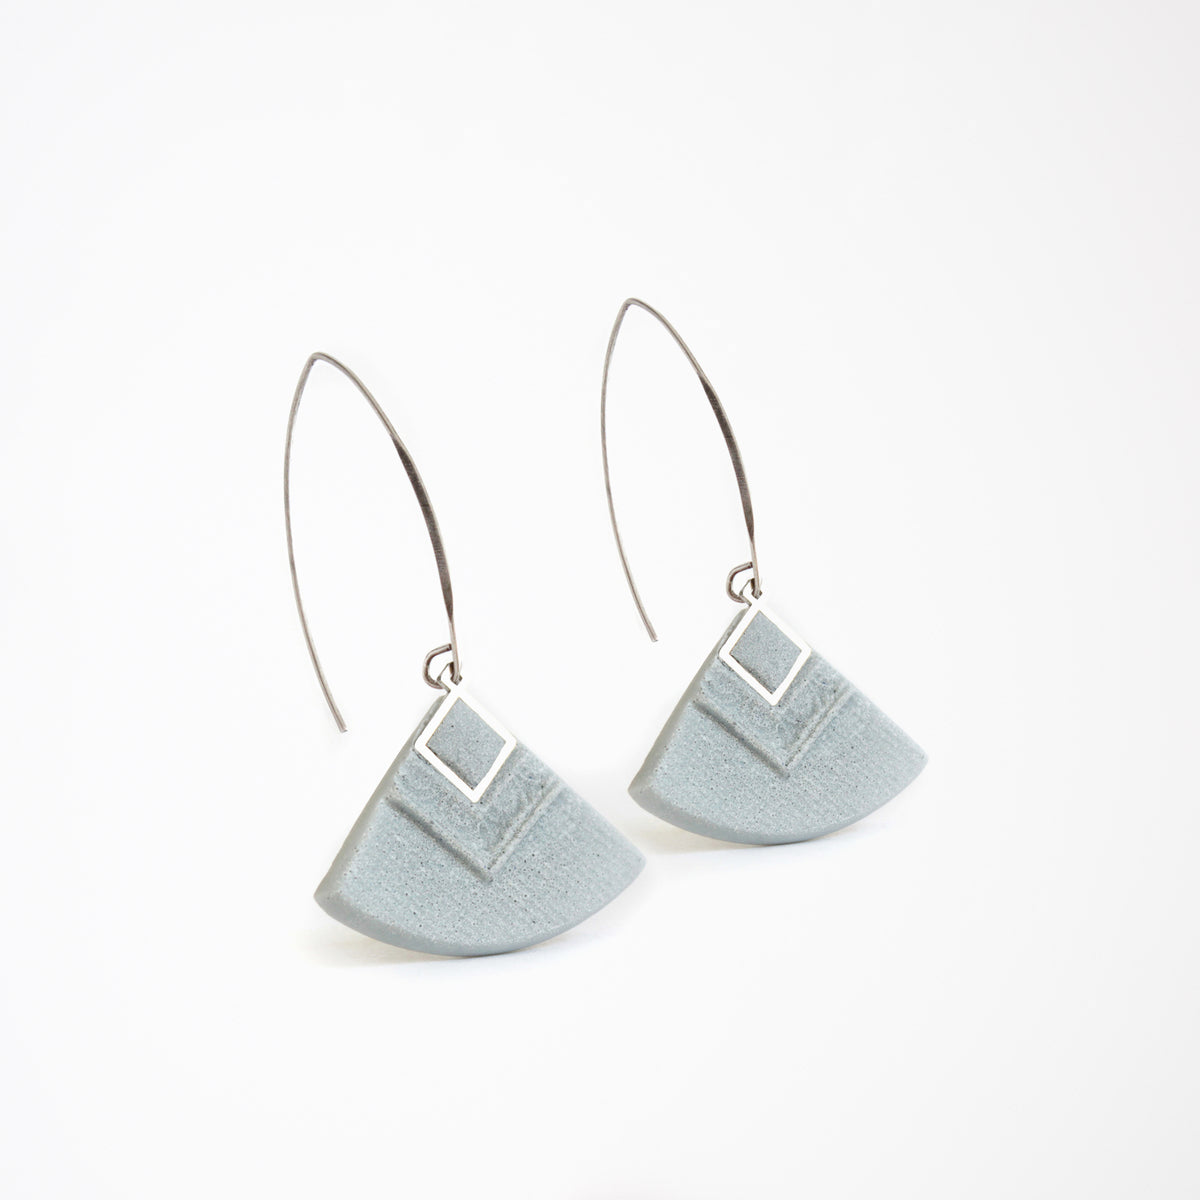 Cléopâtre Earrings in Grey - Handmade in Eco-friendly Resin - Sold by Chic & Basta